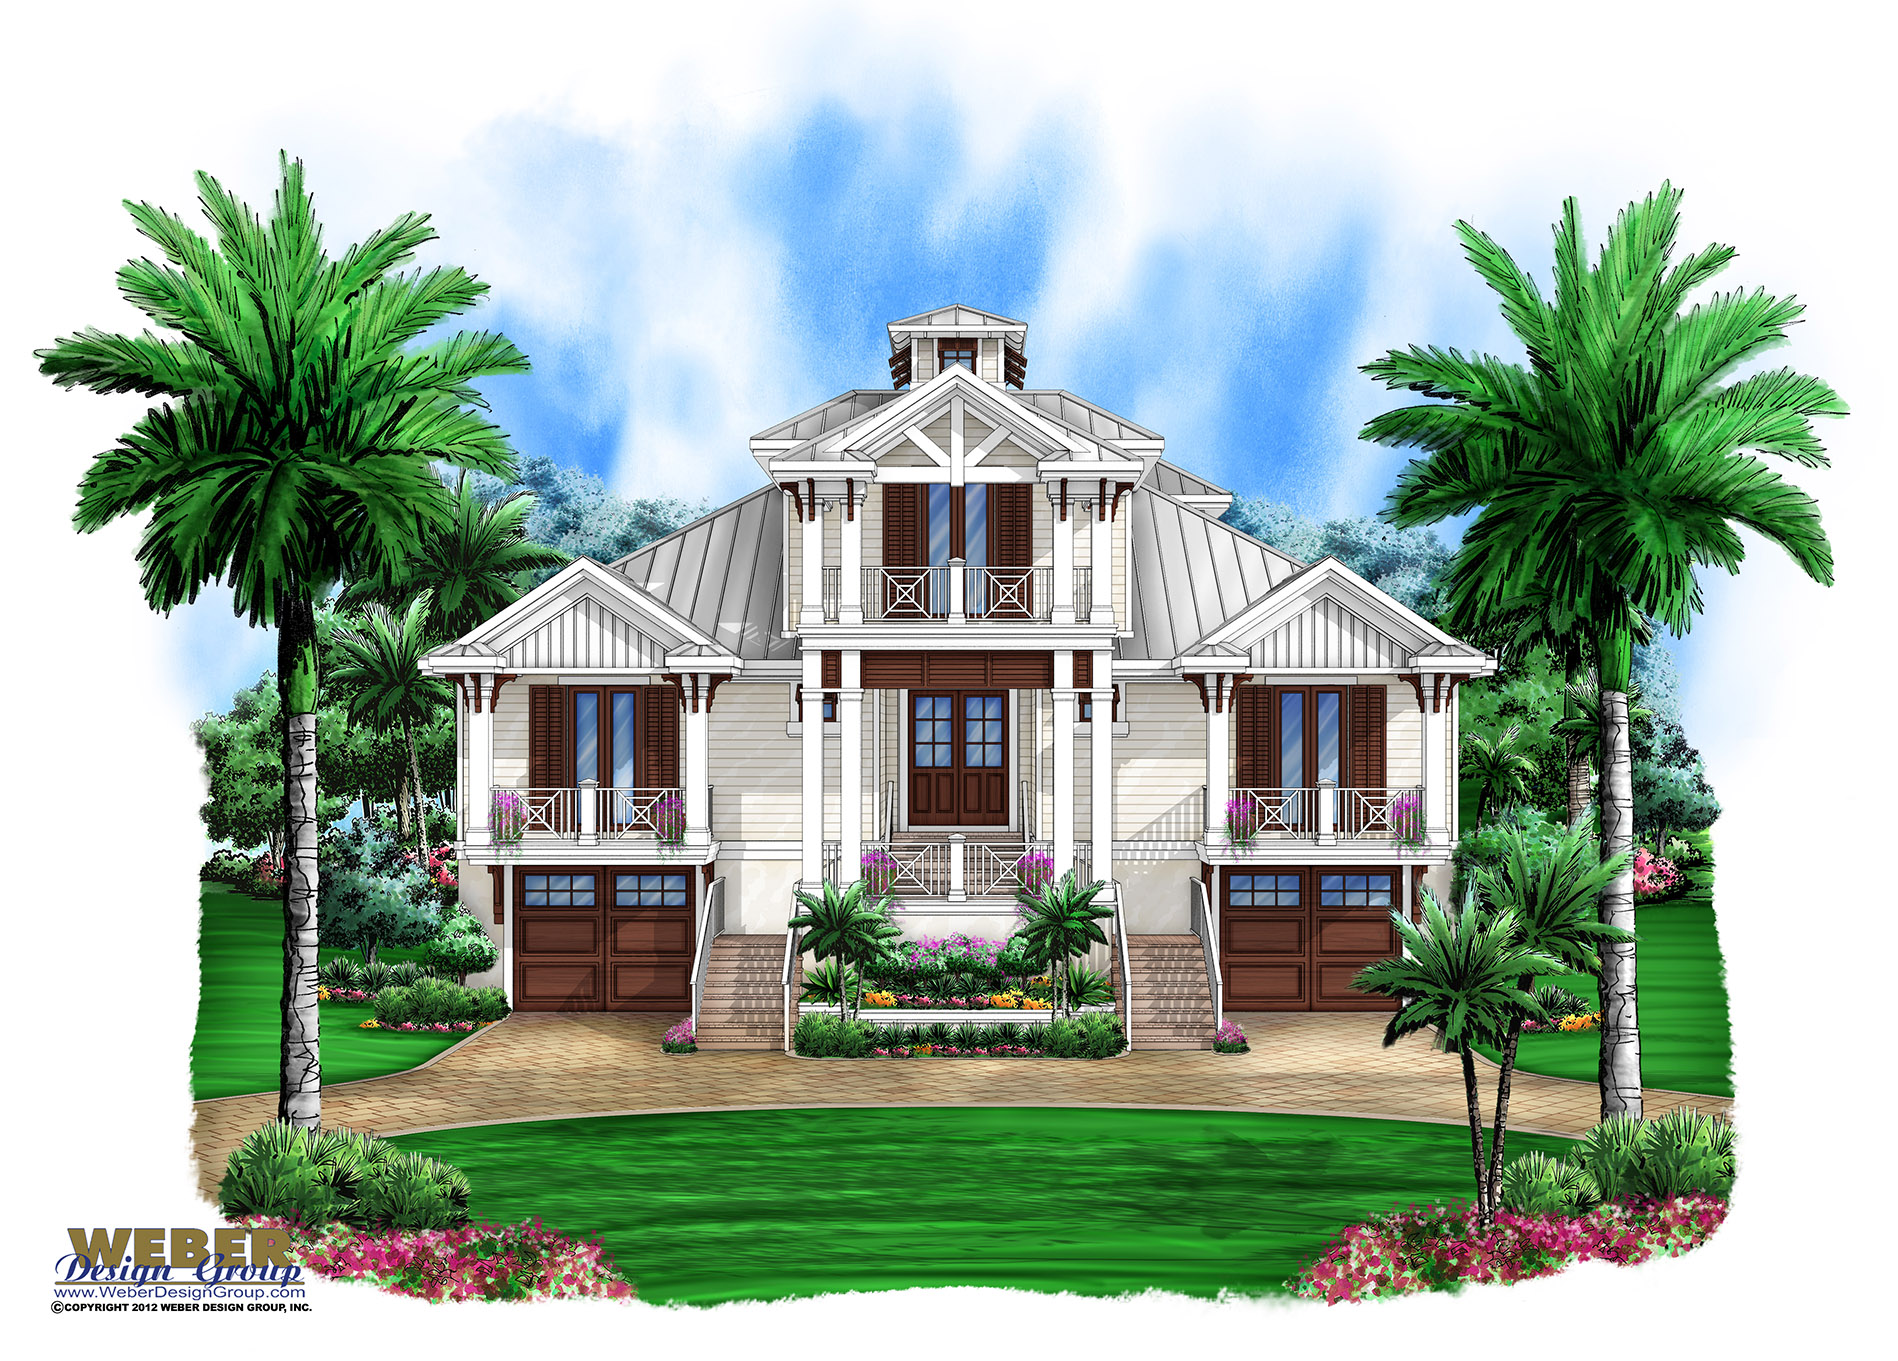 Marsh harbour olde florida house plan weber design group for Beach house elevation designs